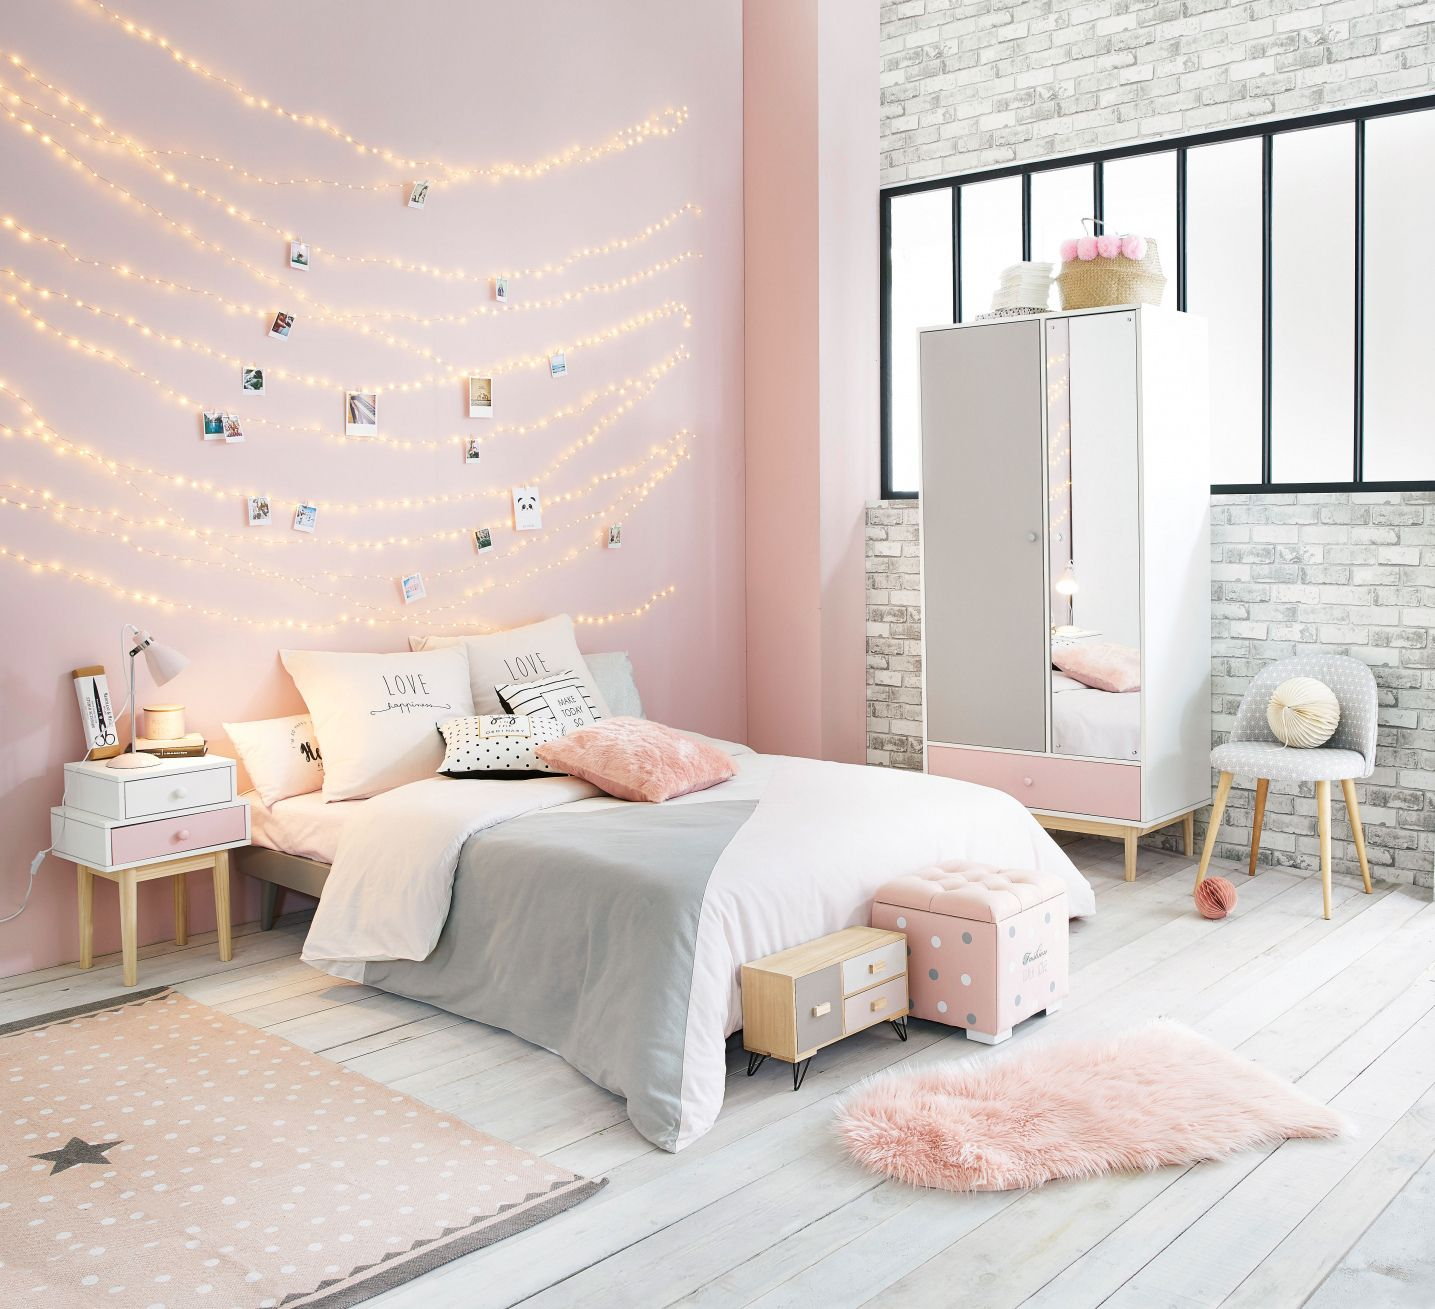 20 Baby Pink Room Decor